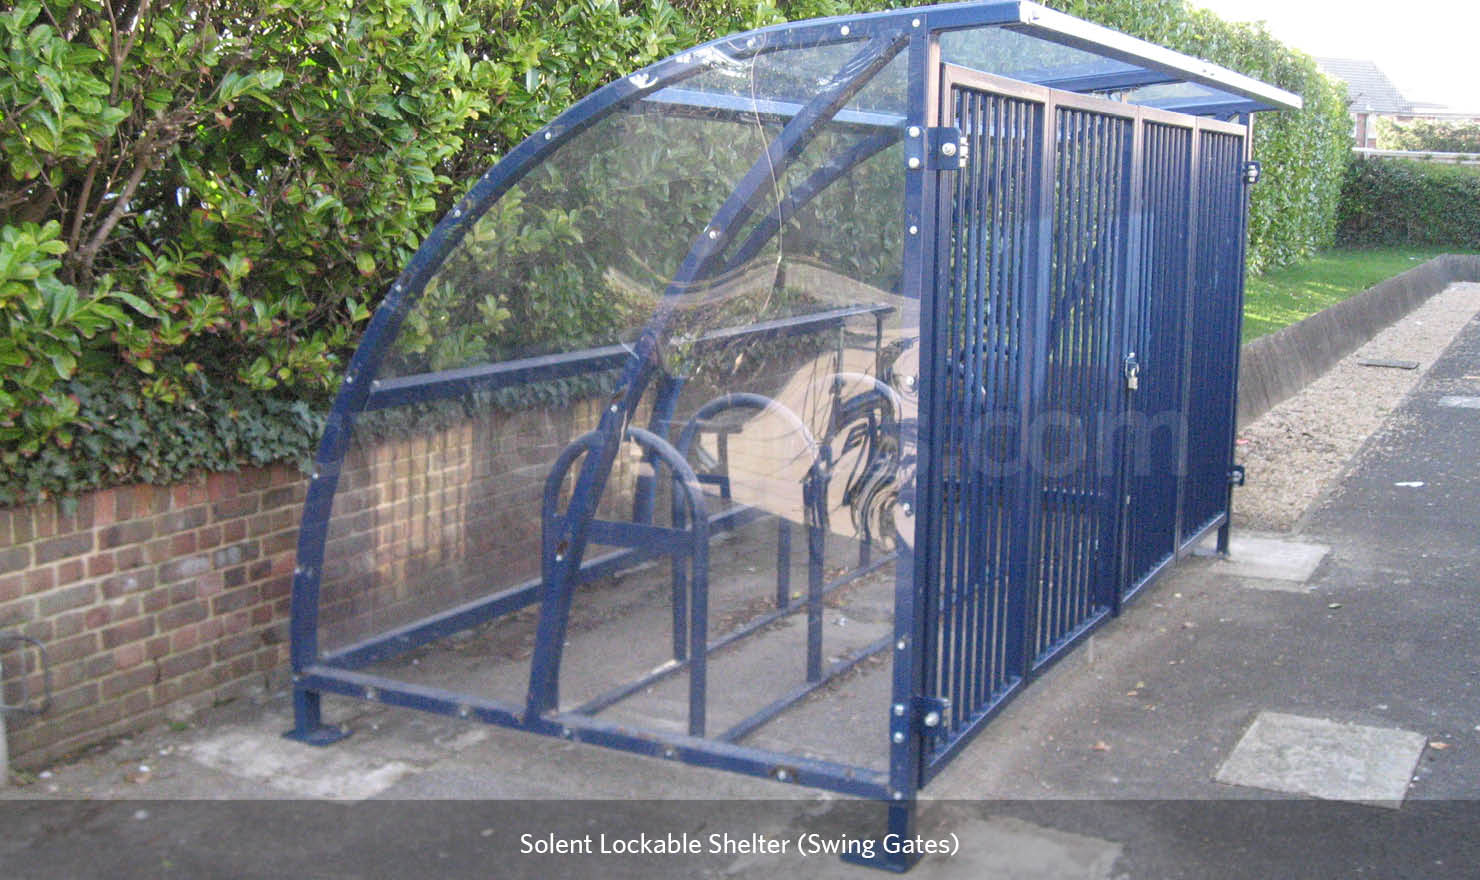 Bike Shelter with Racks